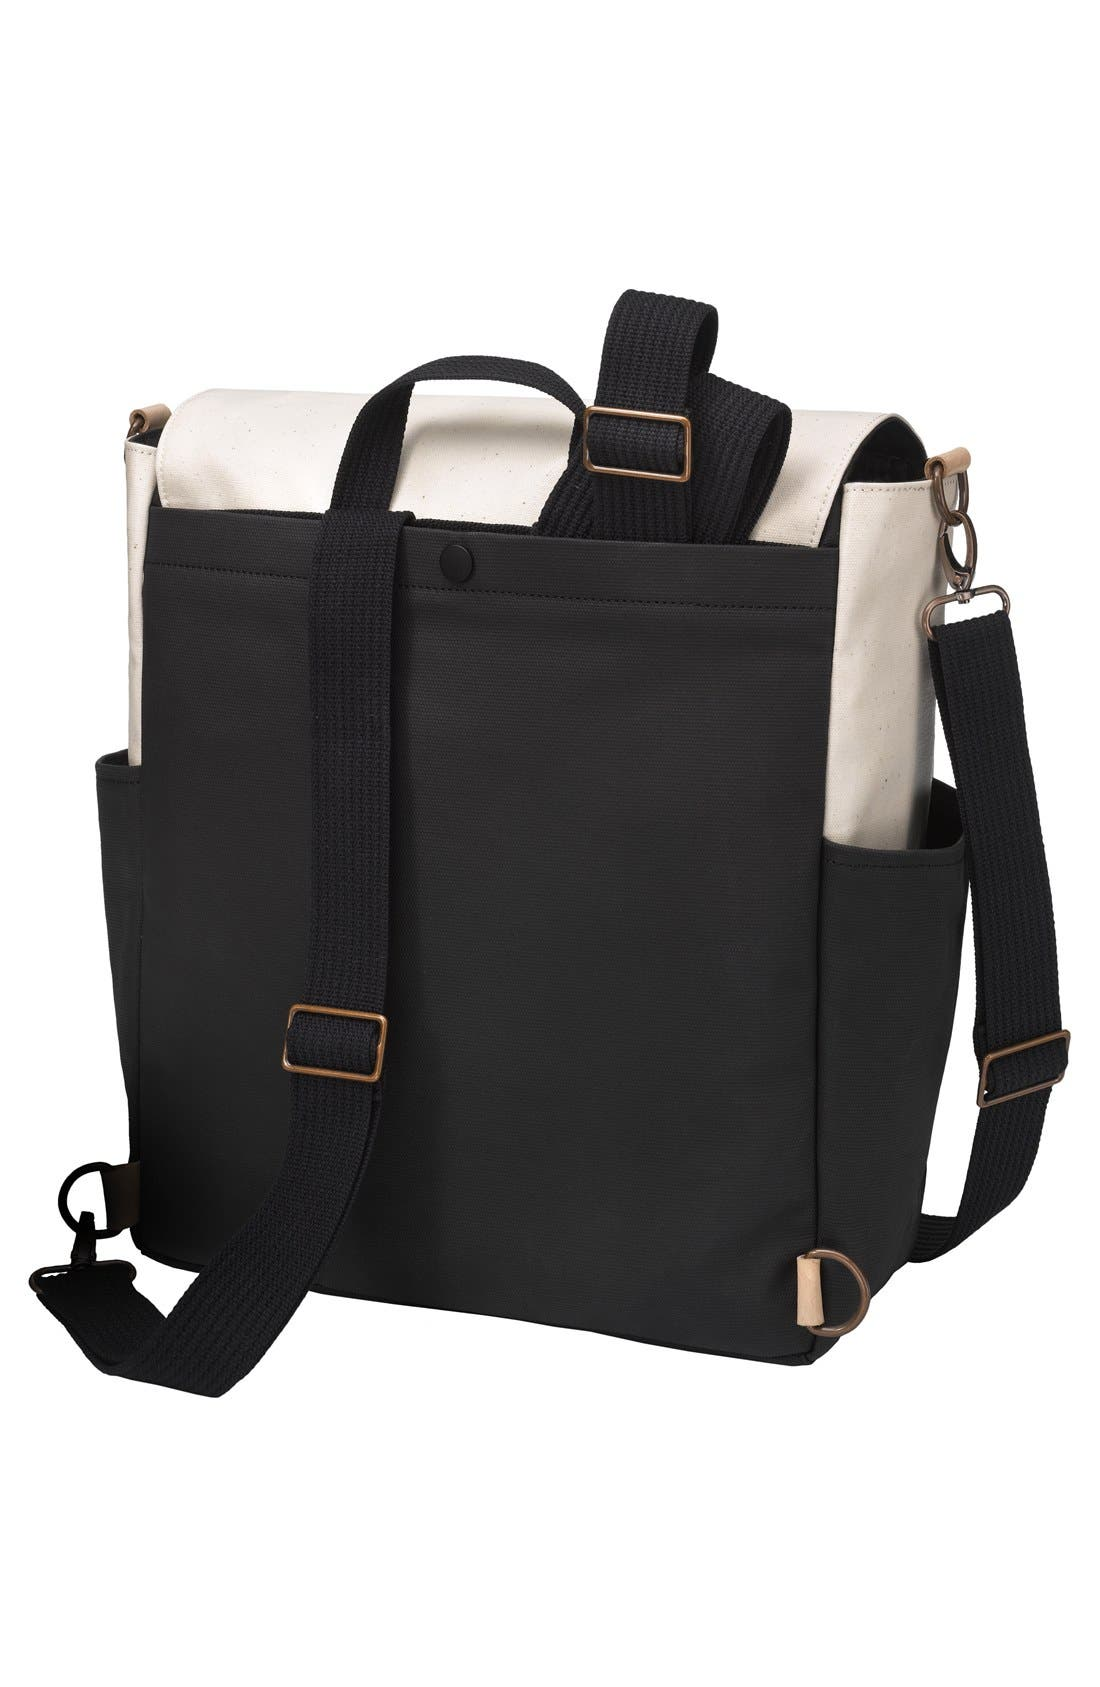 Pathway Backpack Diaper Tote,                             Alternate thumbnail 3, color,                             BIRCH/ BLACK